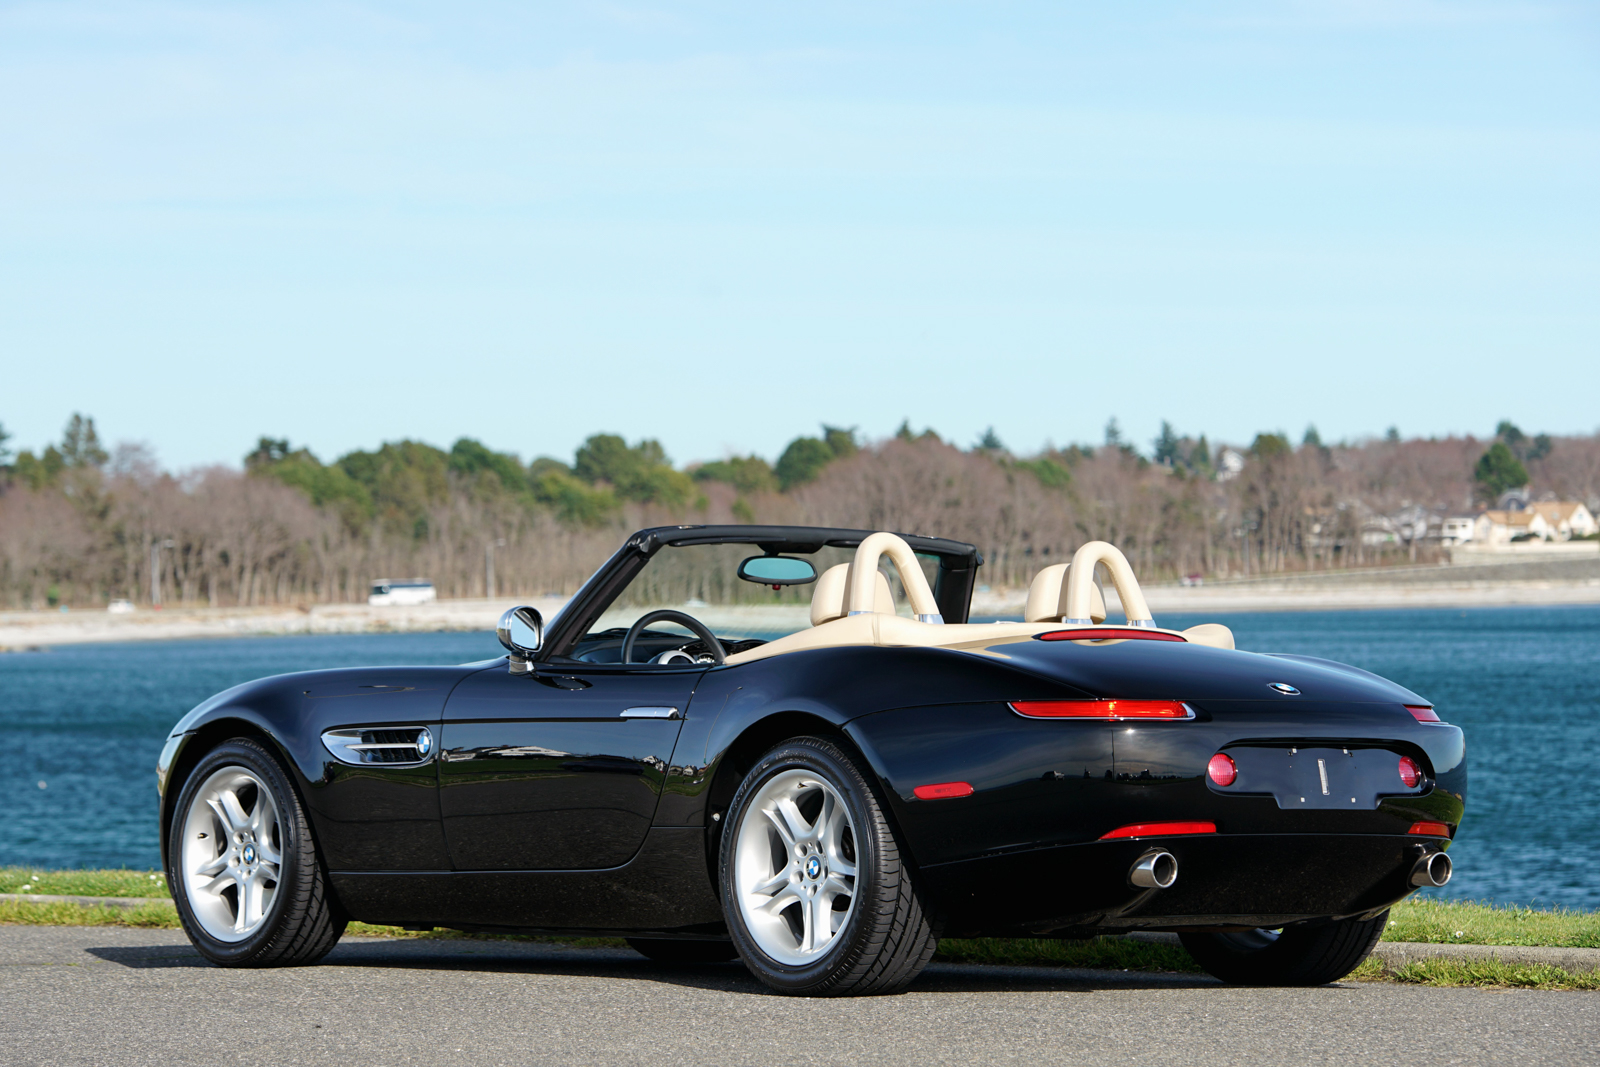 2000 Bmw Z8 Roadster Silver Arrow Cars Ltd